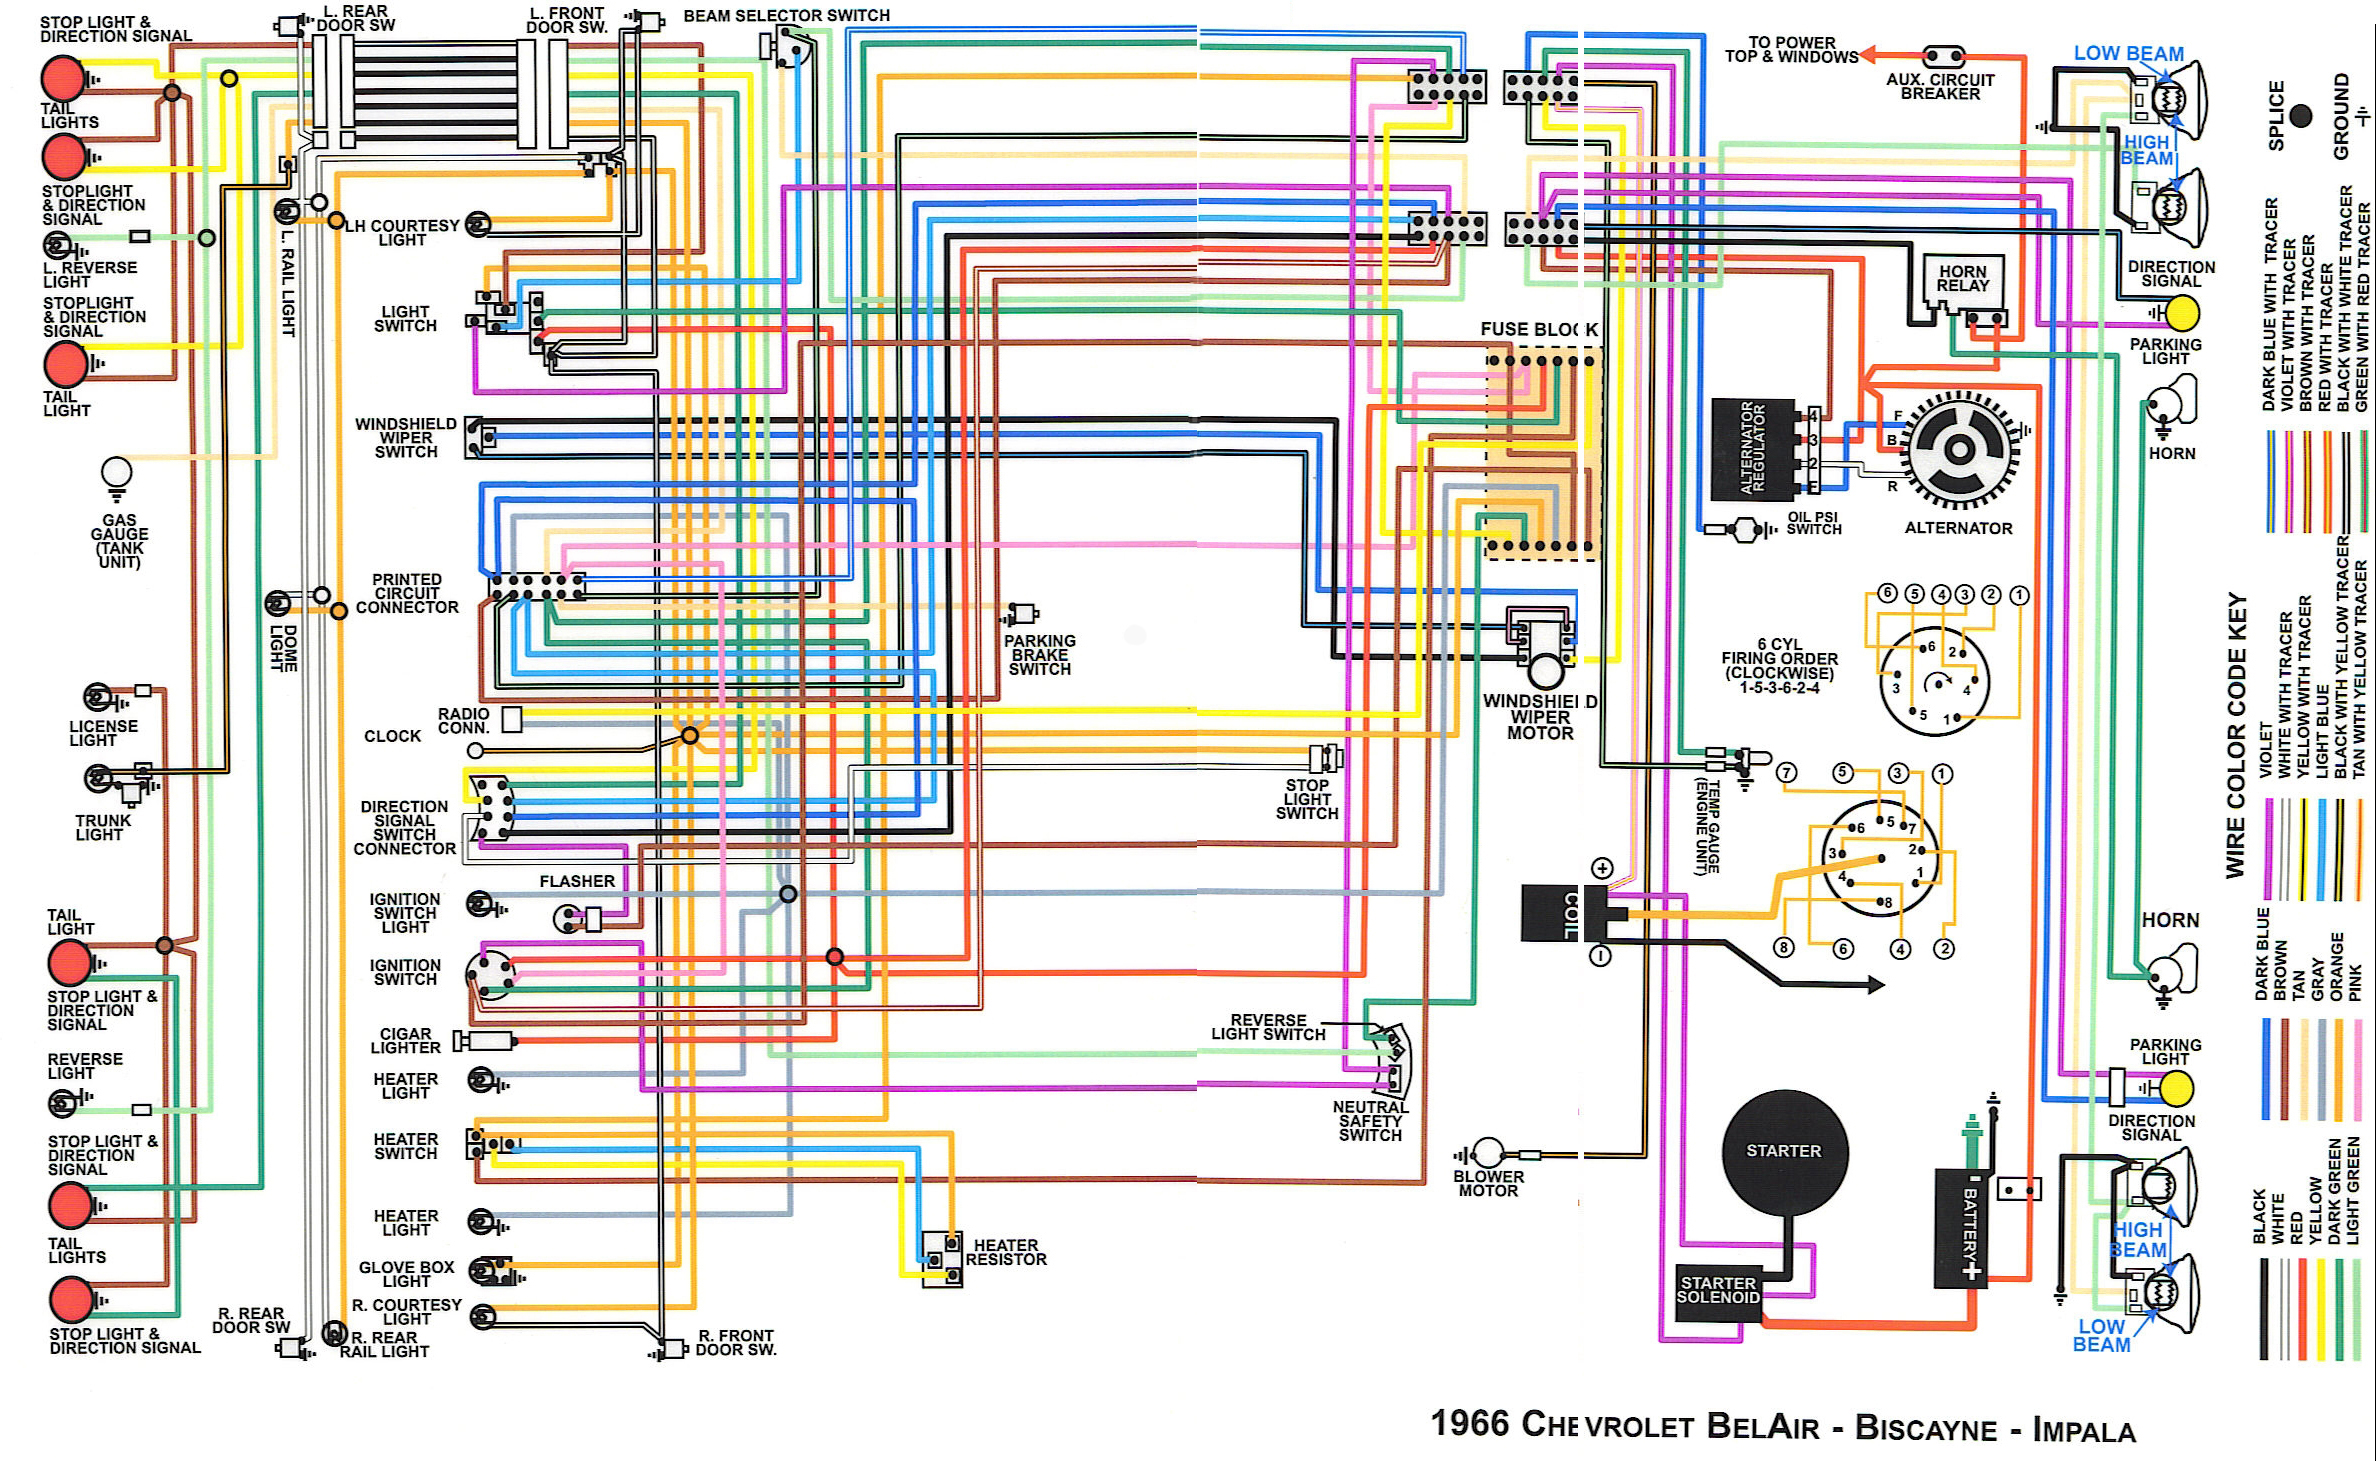 american wiring diagram 1972 chevelle wiring diagrams scematic 1969 chevelle wiring diagram 1972 chevelle wiring diagram temp gauge simple wiring schema 1972 chevelle engine wiring diagram 1965 chevy